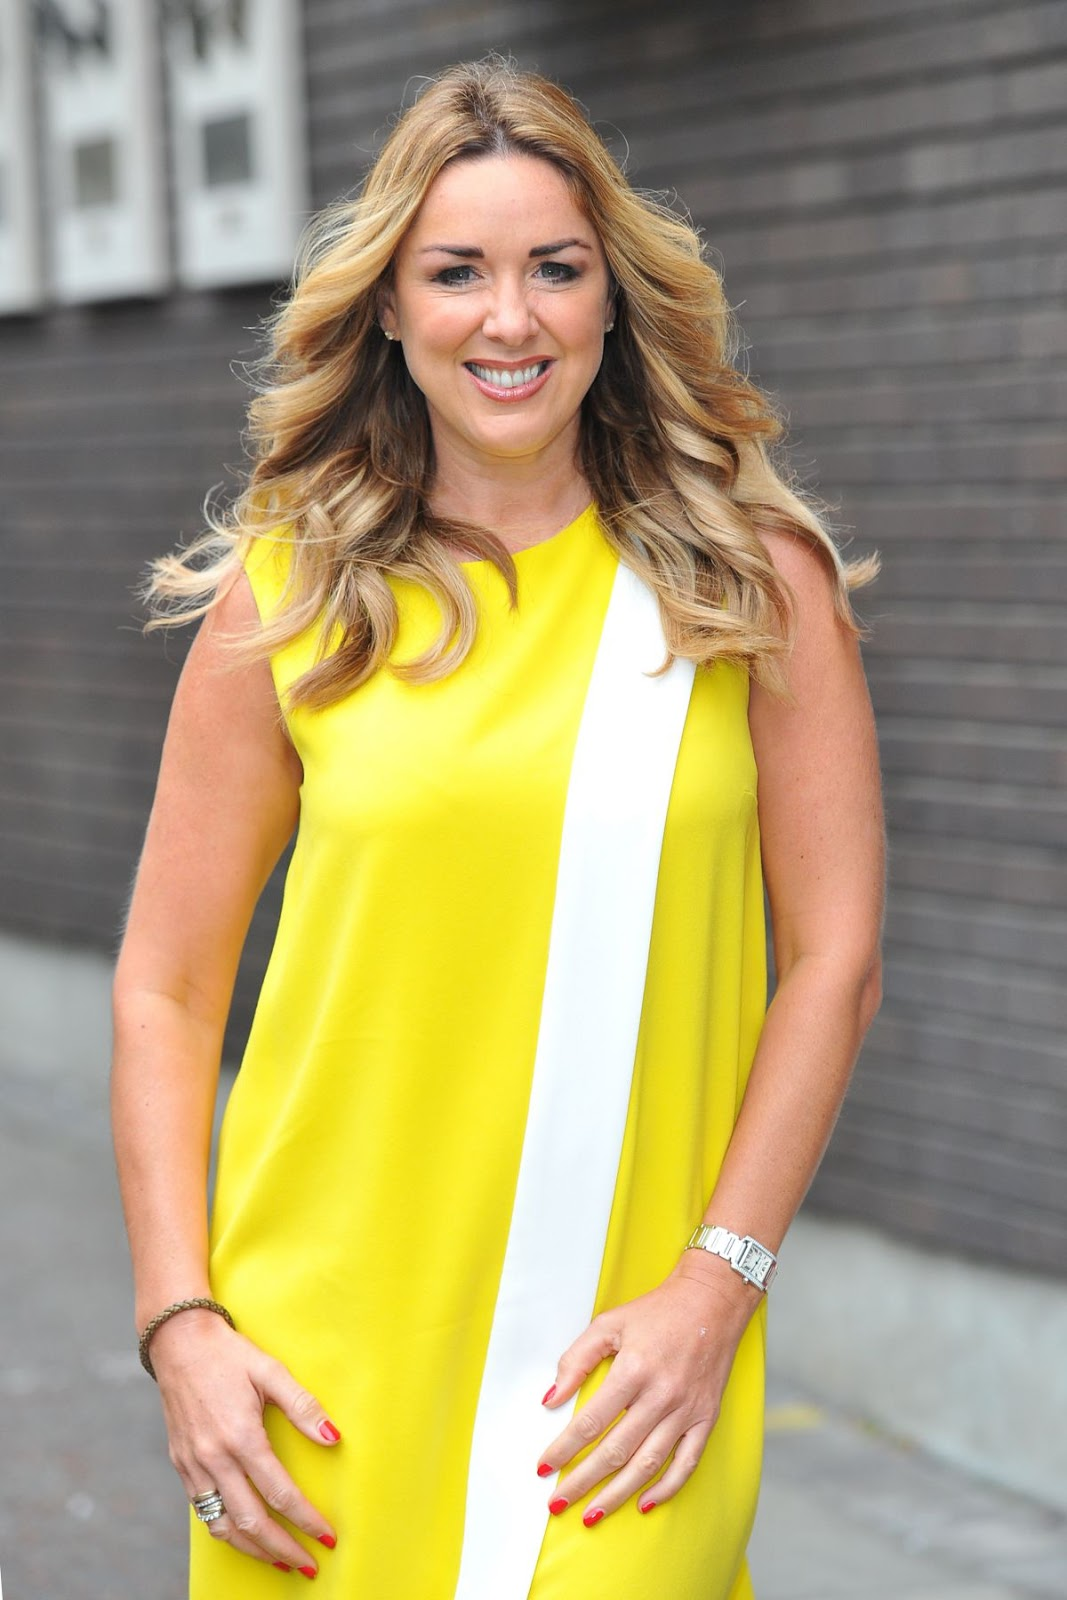 HQ Photos of Claire Sweeney in Yellow dress At iTV Studios In London